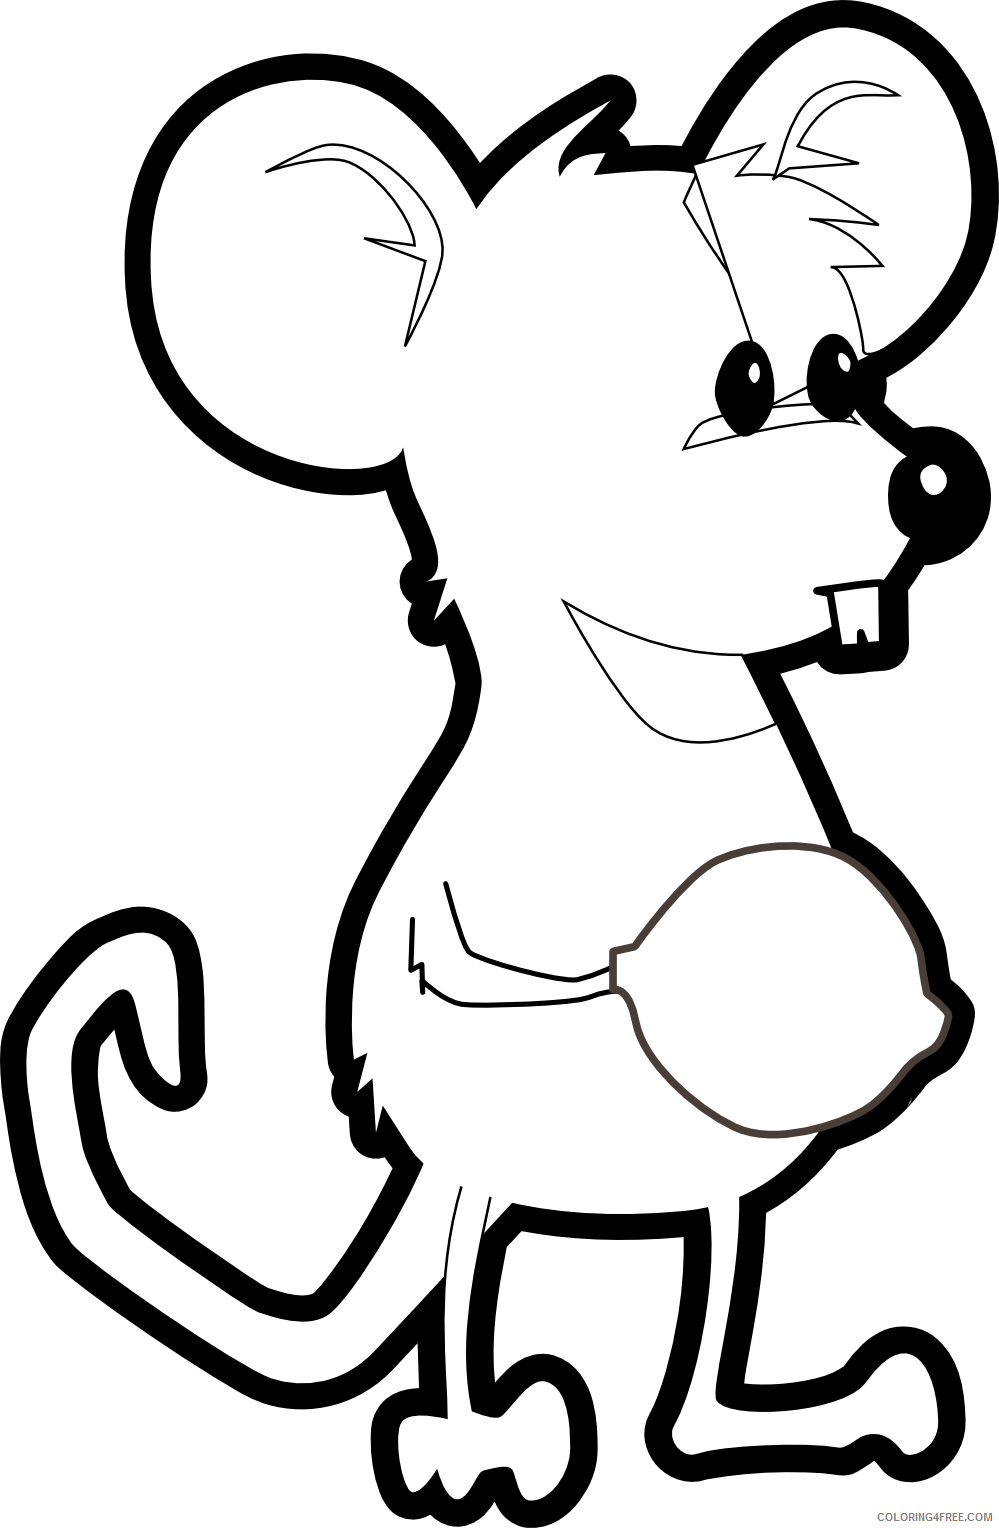 Mouse Outline Coloring Pages leg Printable Coloring4free